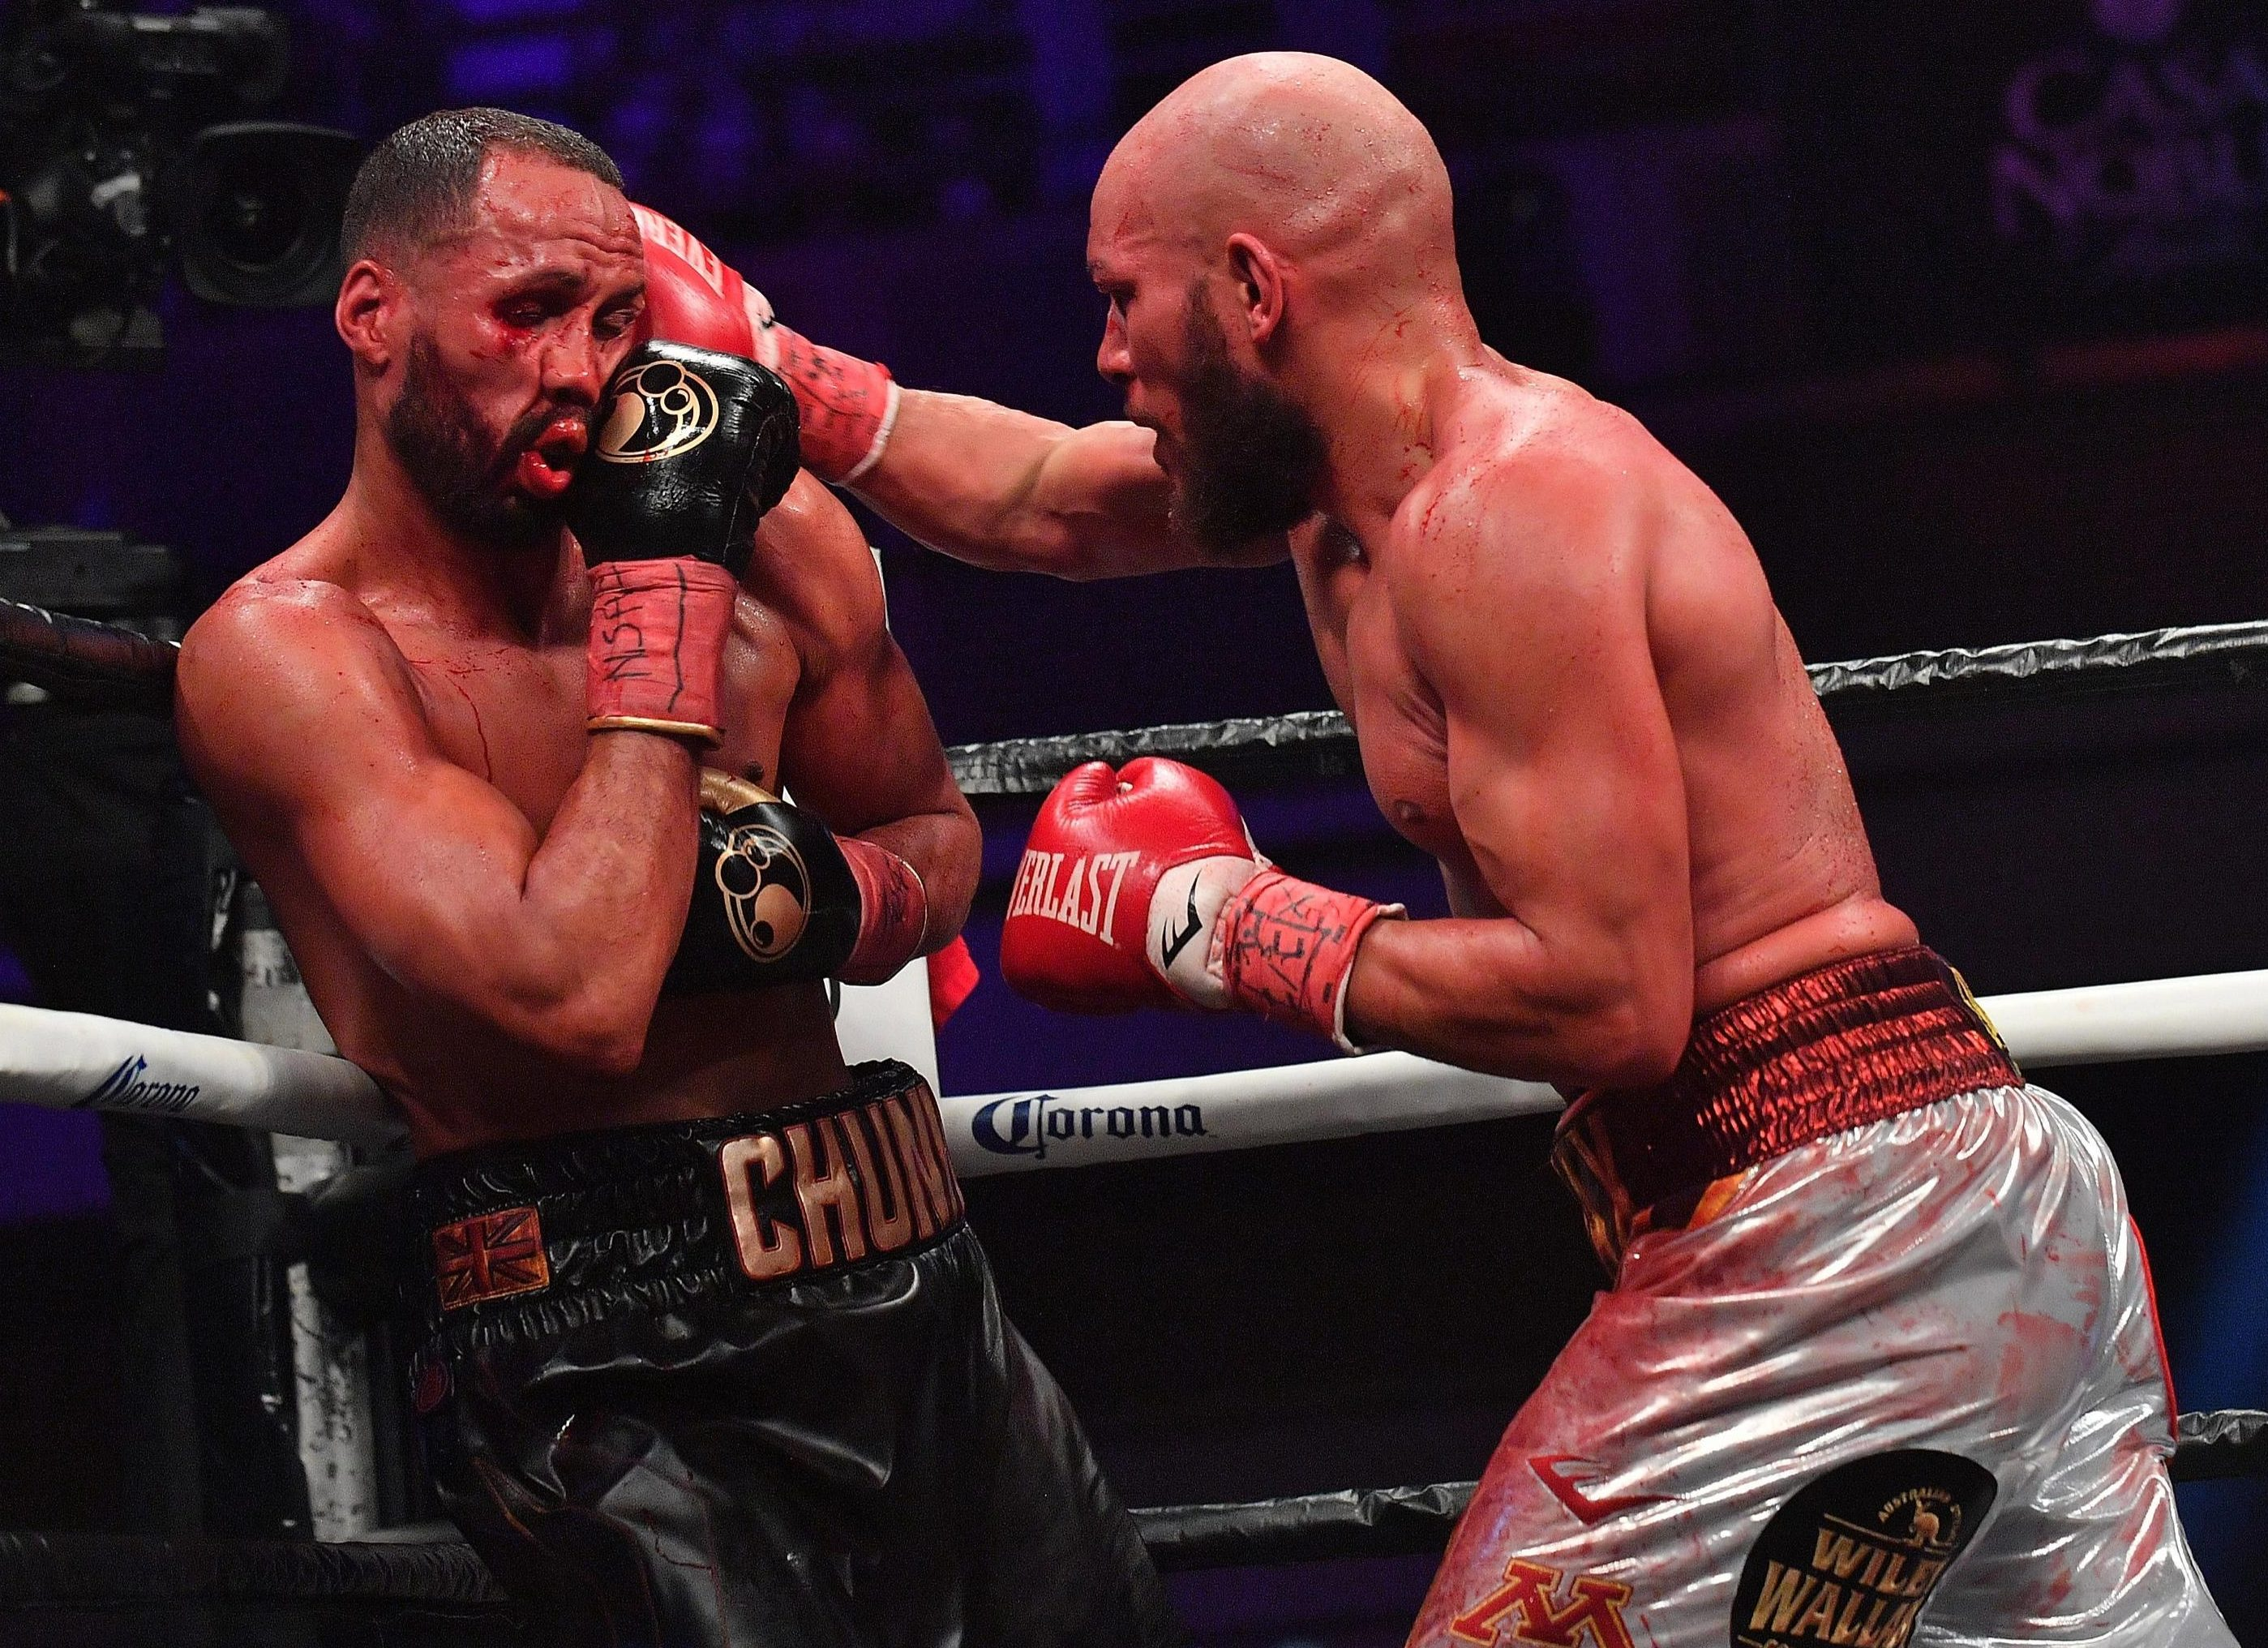 James DeGale won by unanimous decision to reclaim his title from Truax